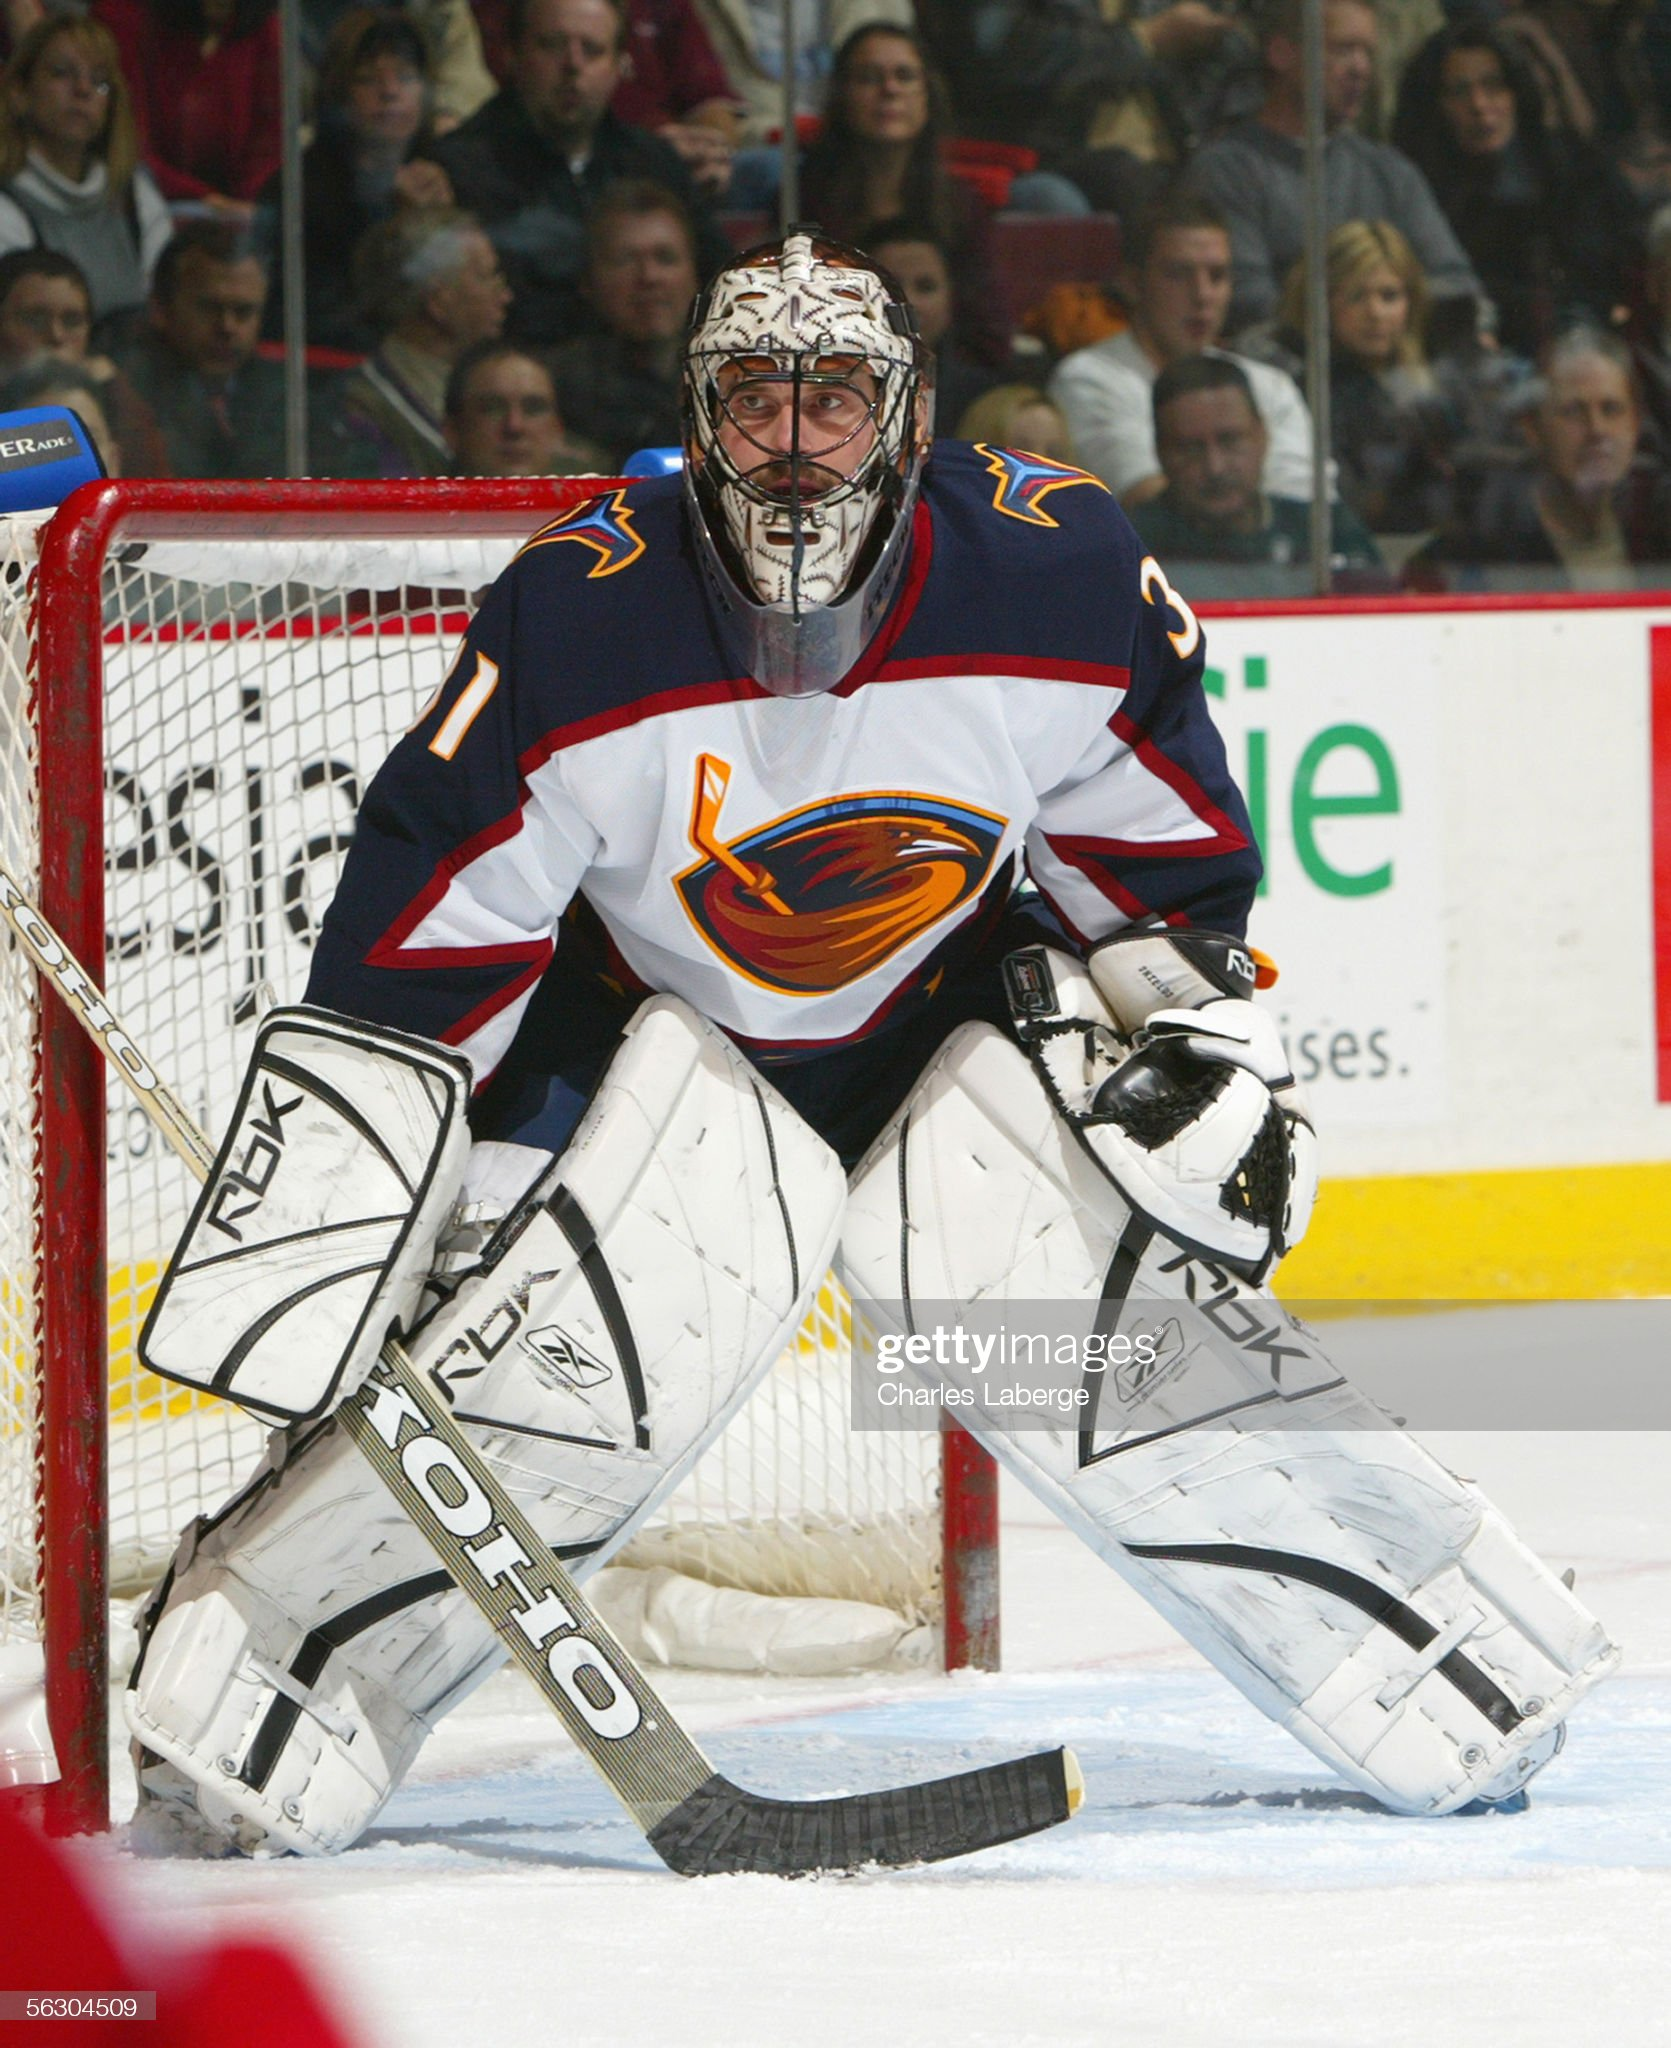 goaltender-steve-shields-of-the-atlanta-